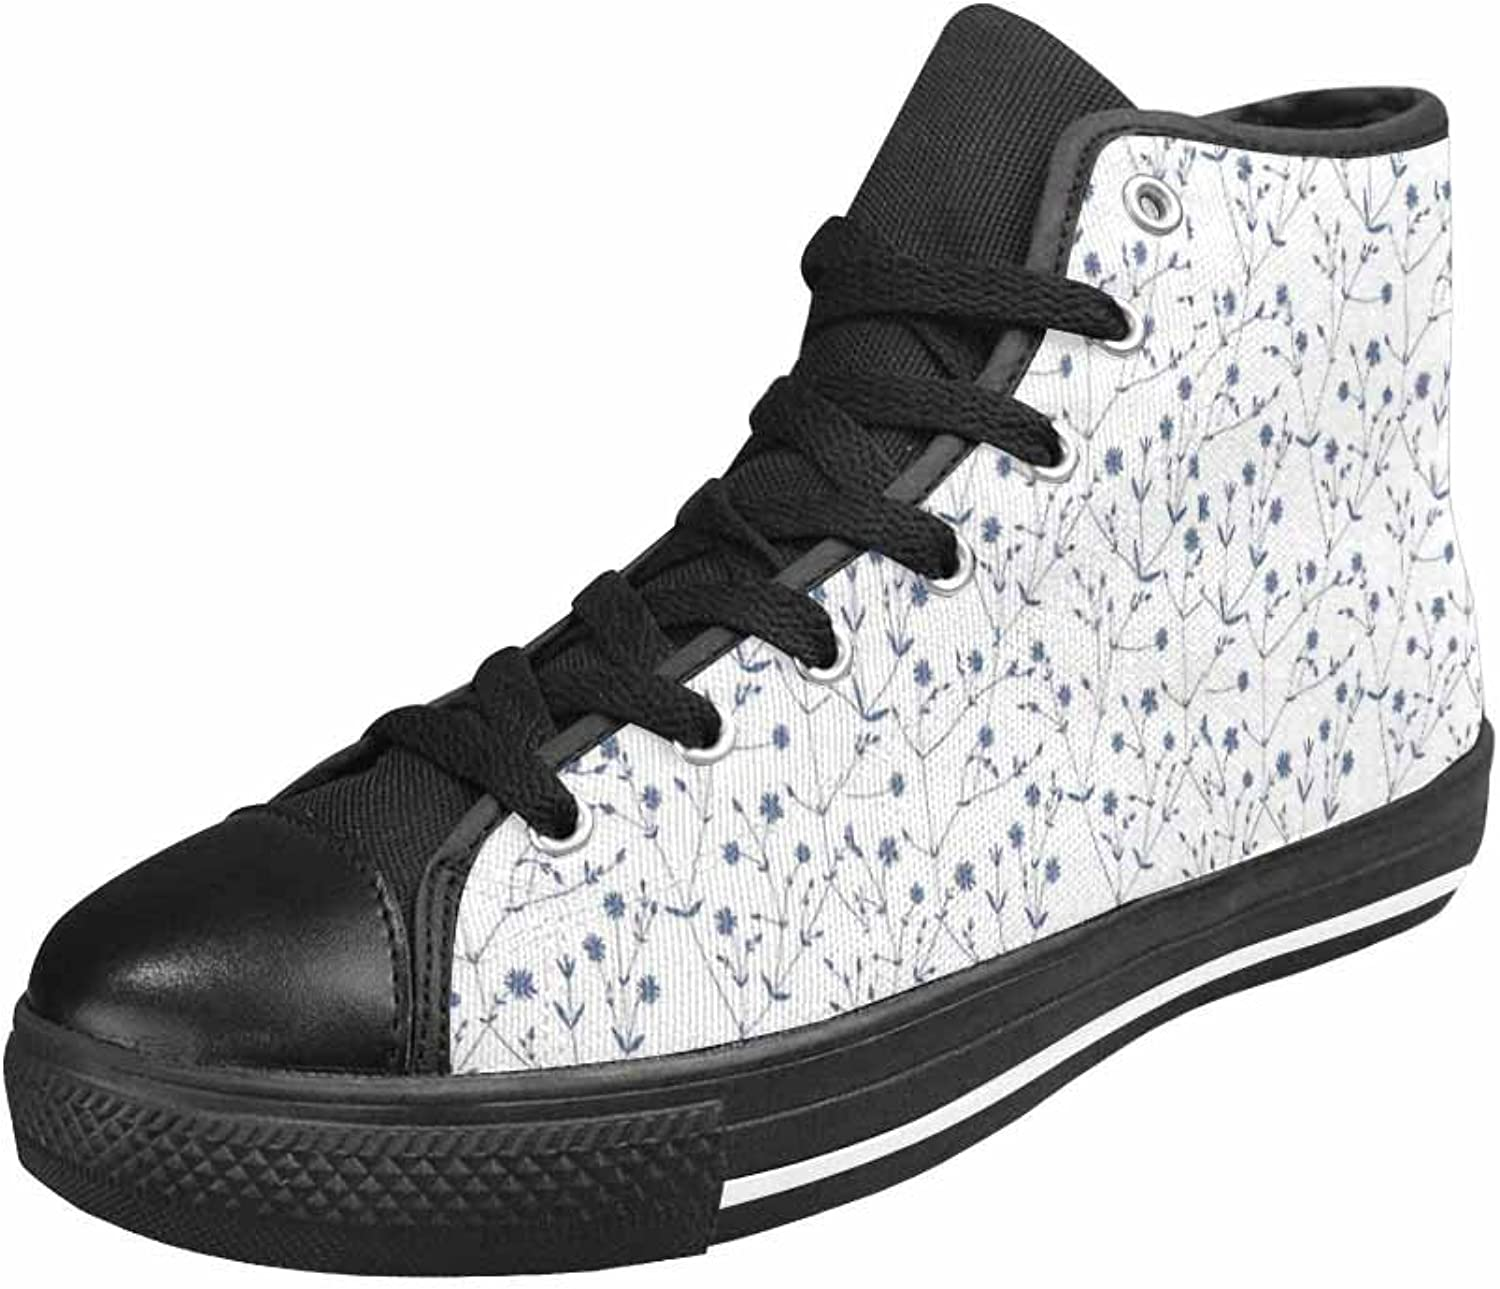 Women's Casual High Top Canvas Season Sneaker up Sports shoes